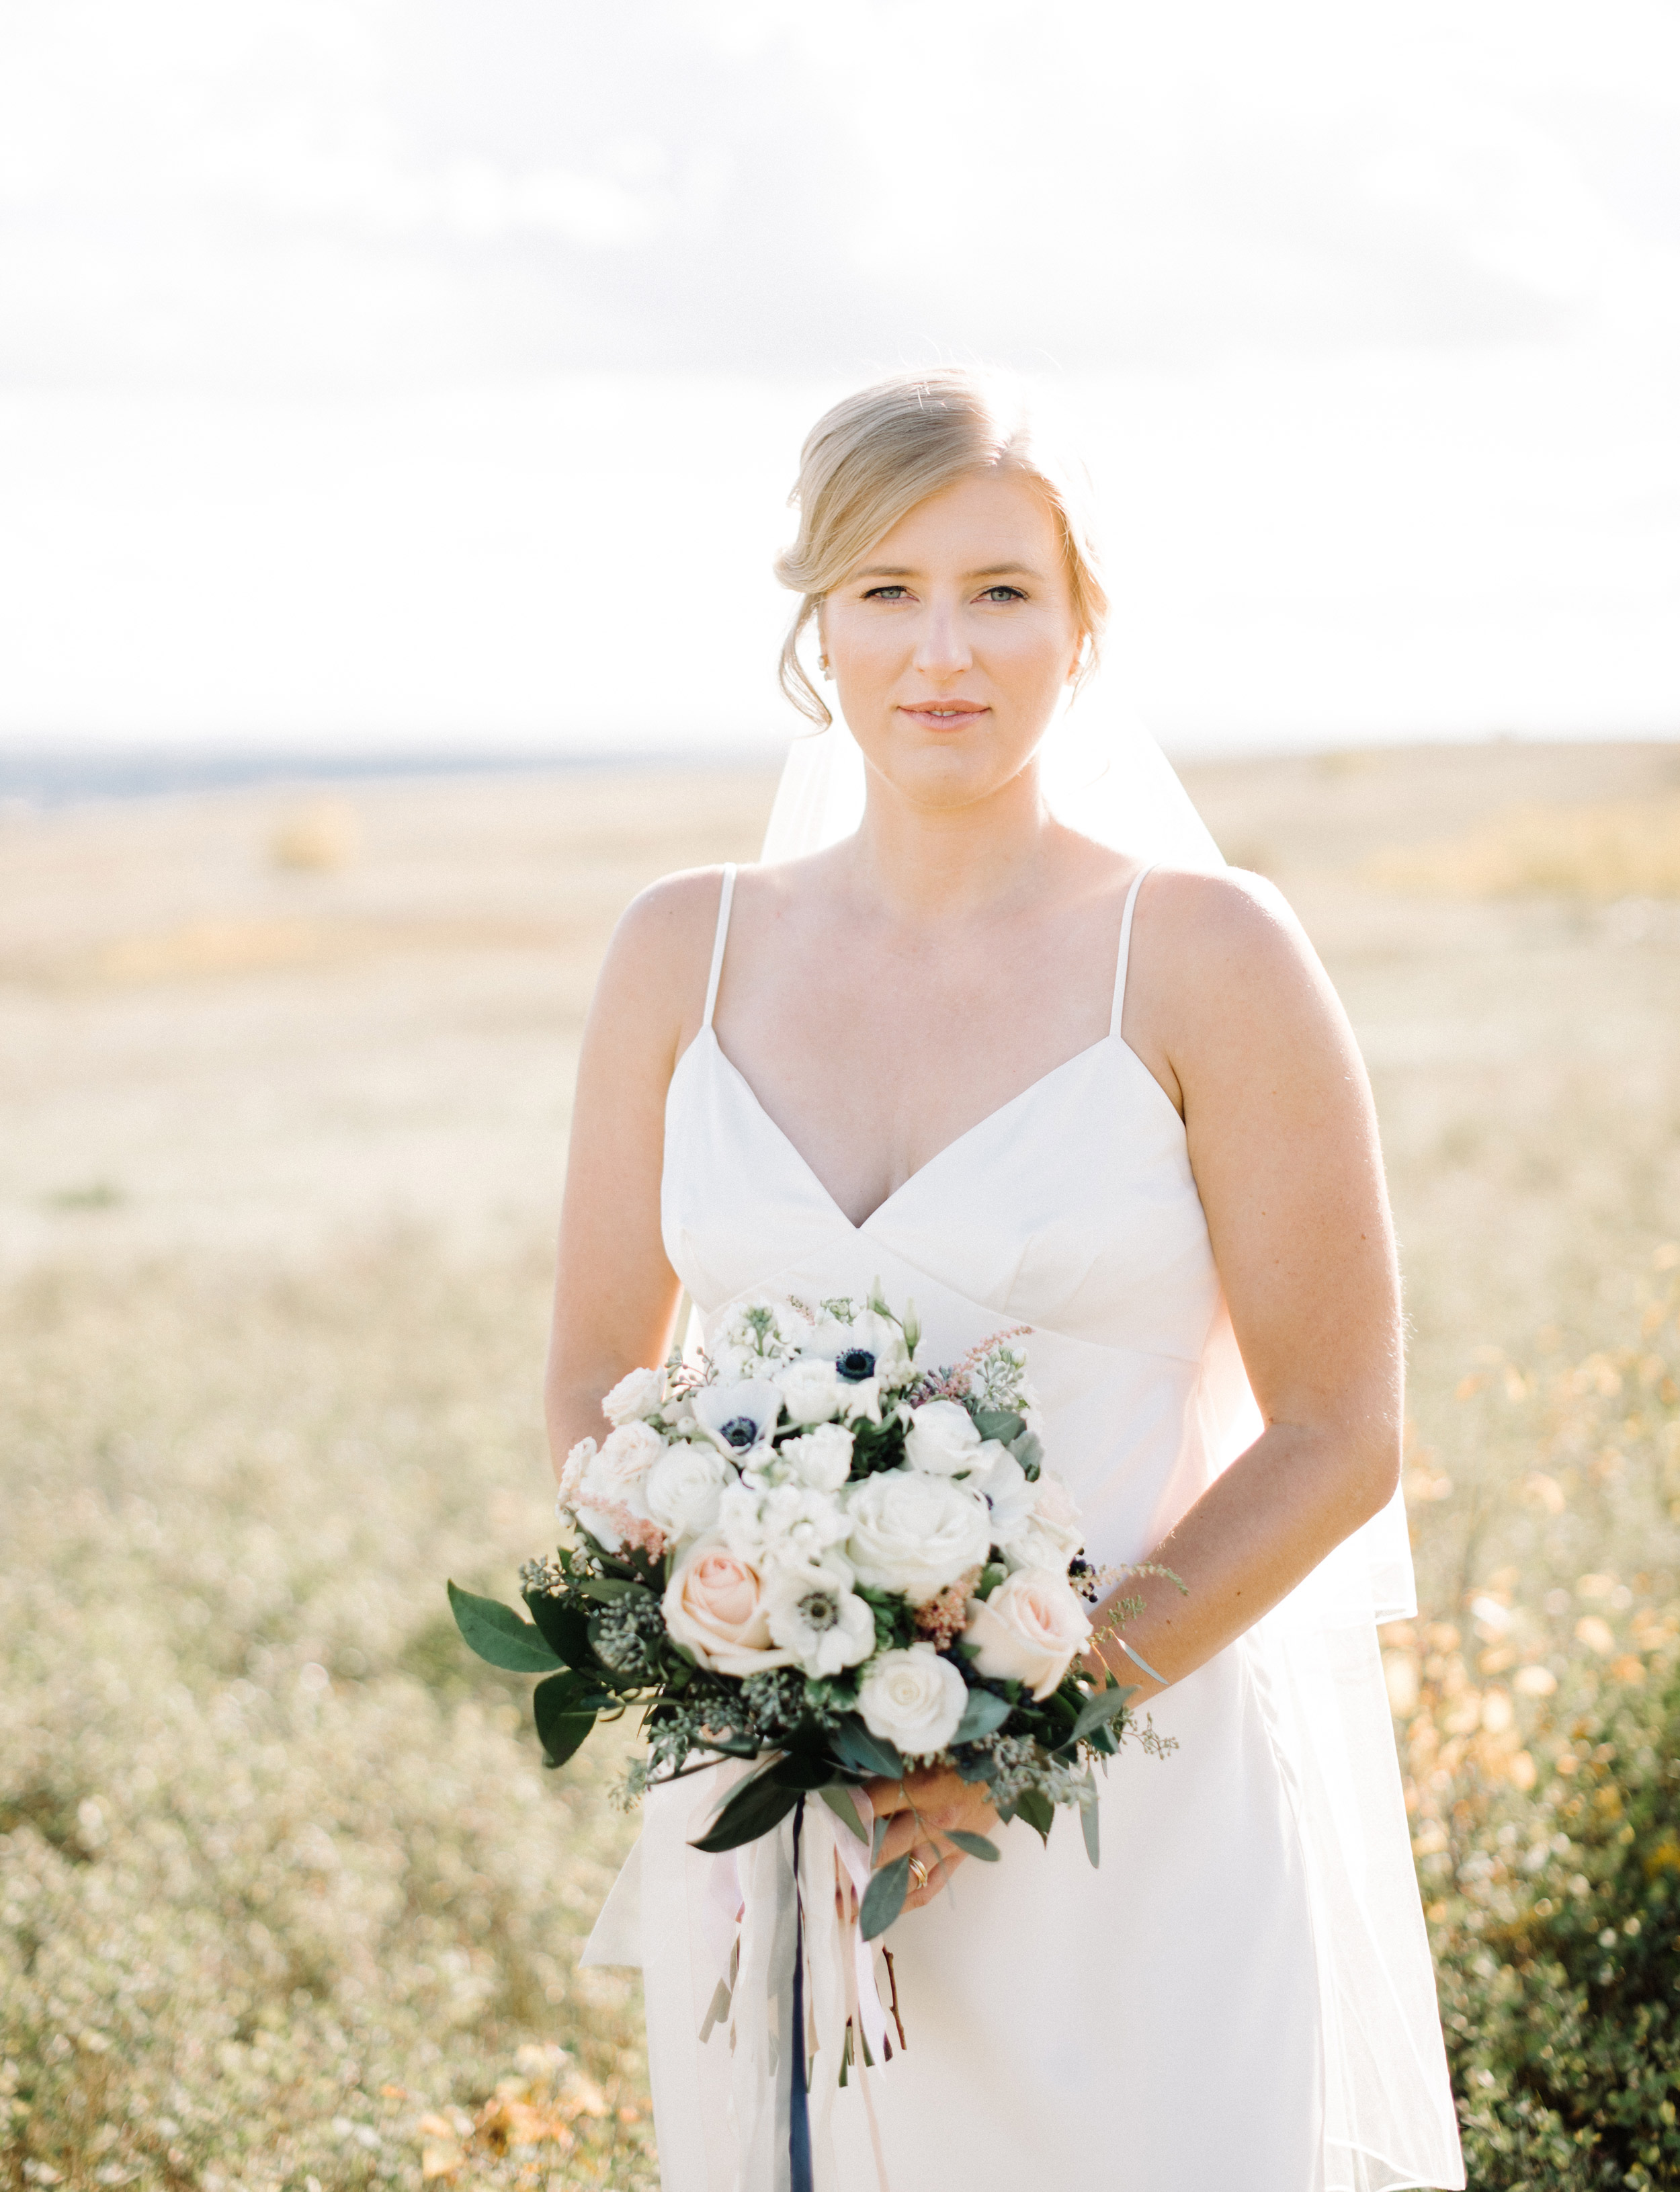 013-calgary_wedding_photographers.jpg